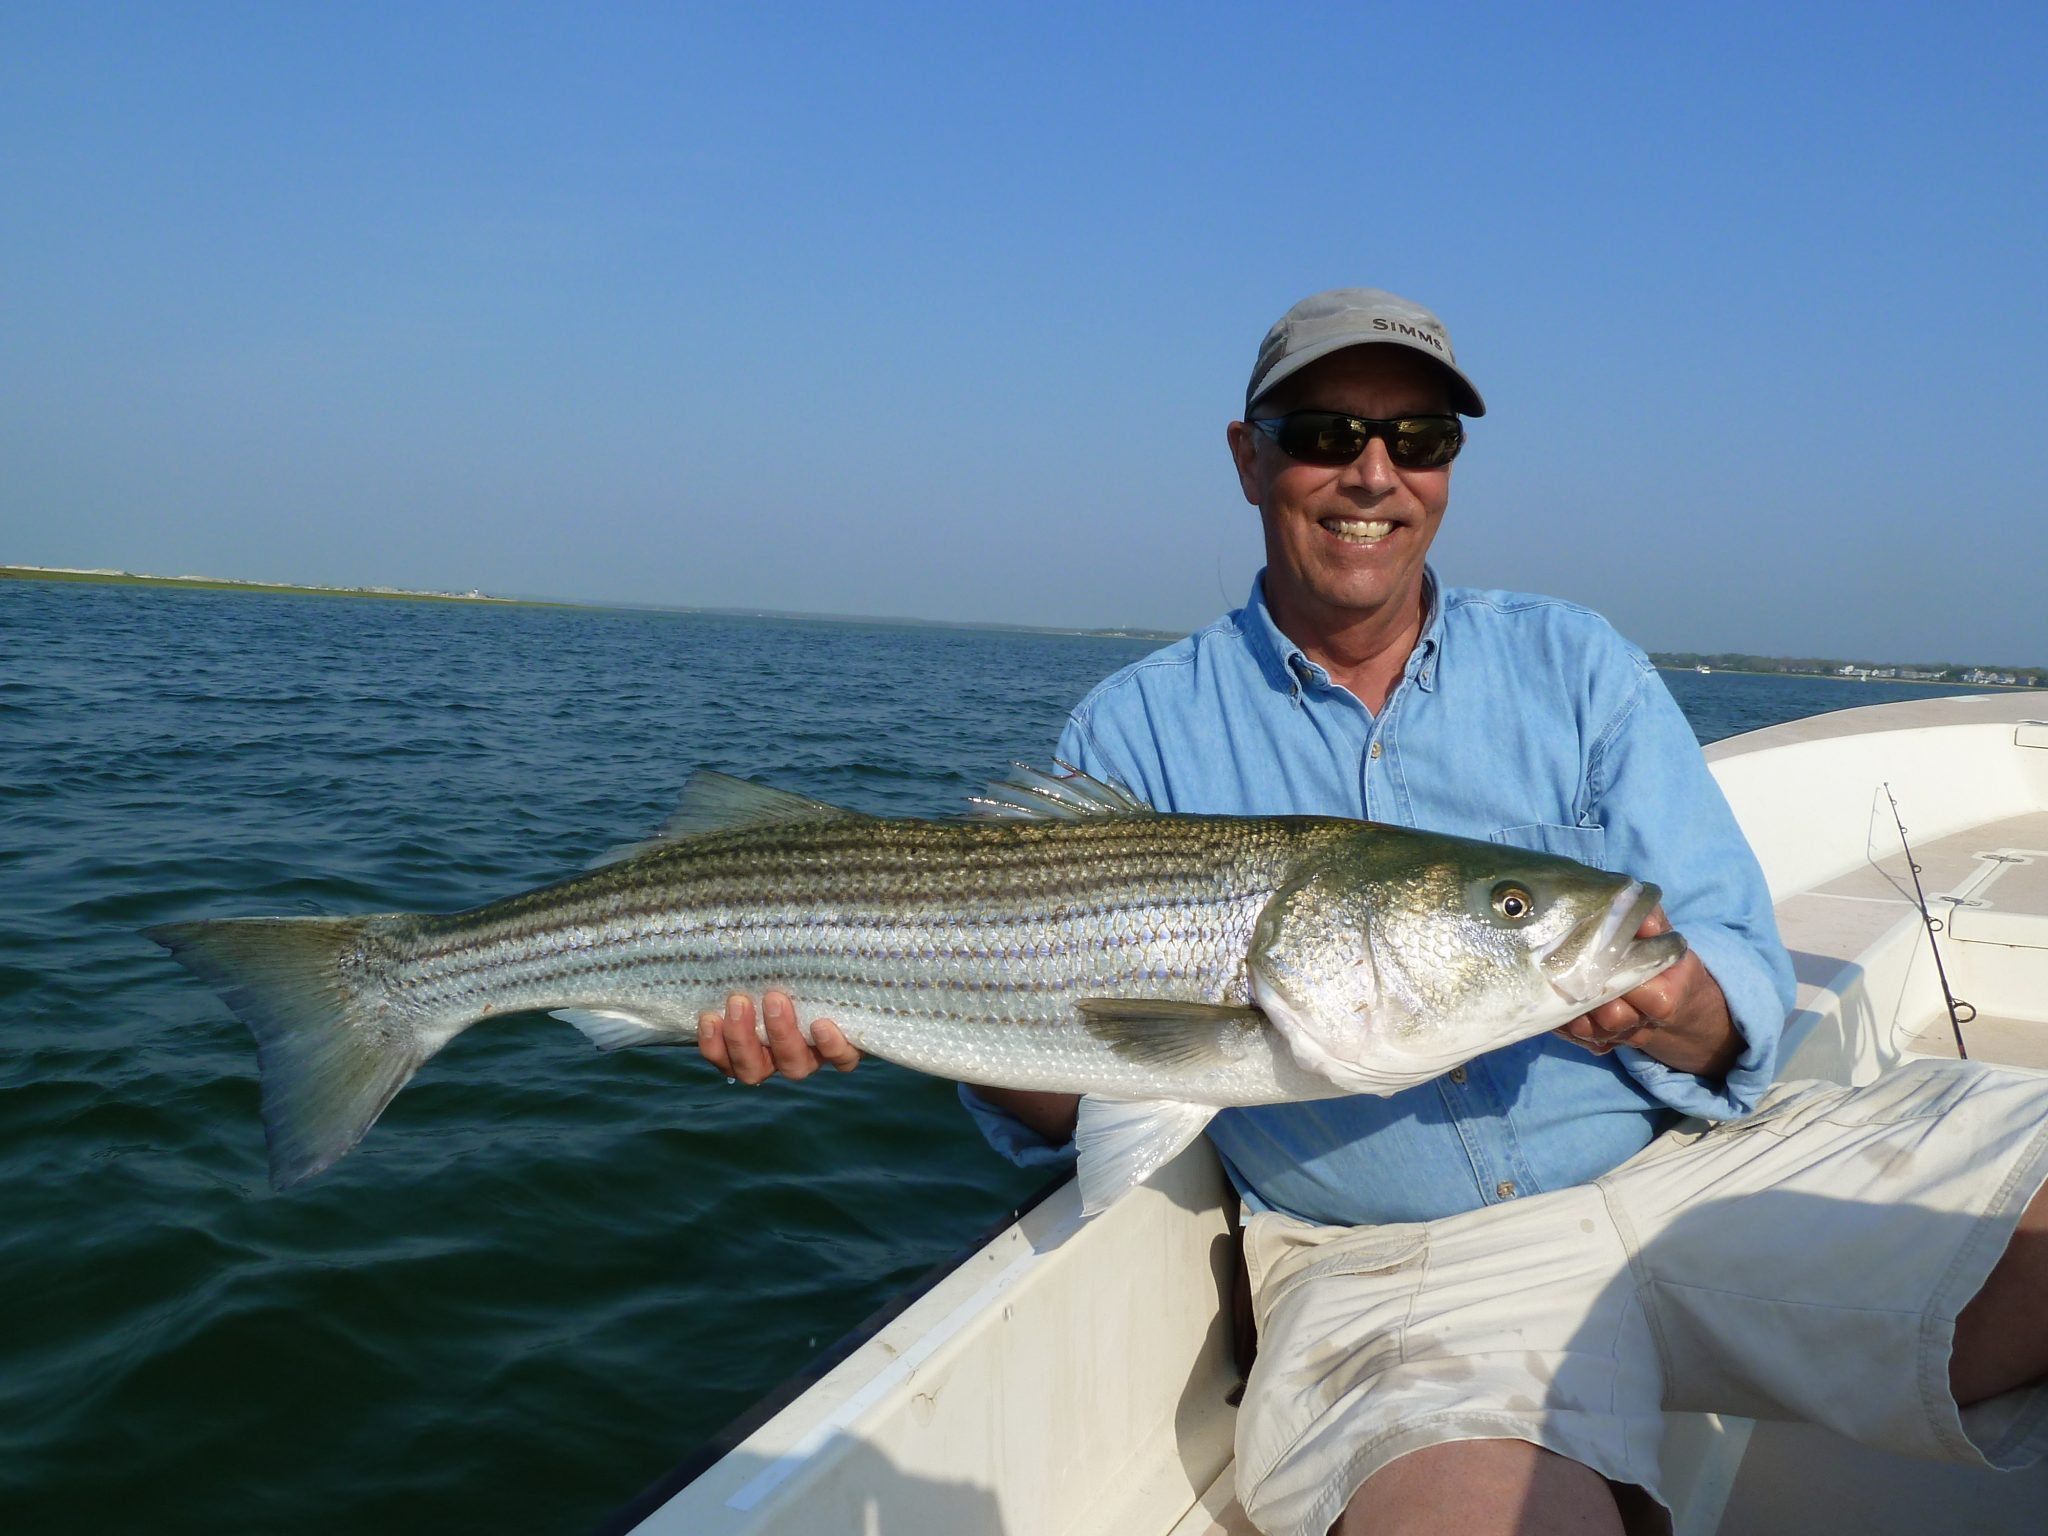 Lodging and a day of fishing for two people with dean for Cape cod fishing